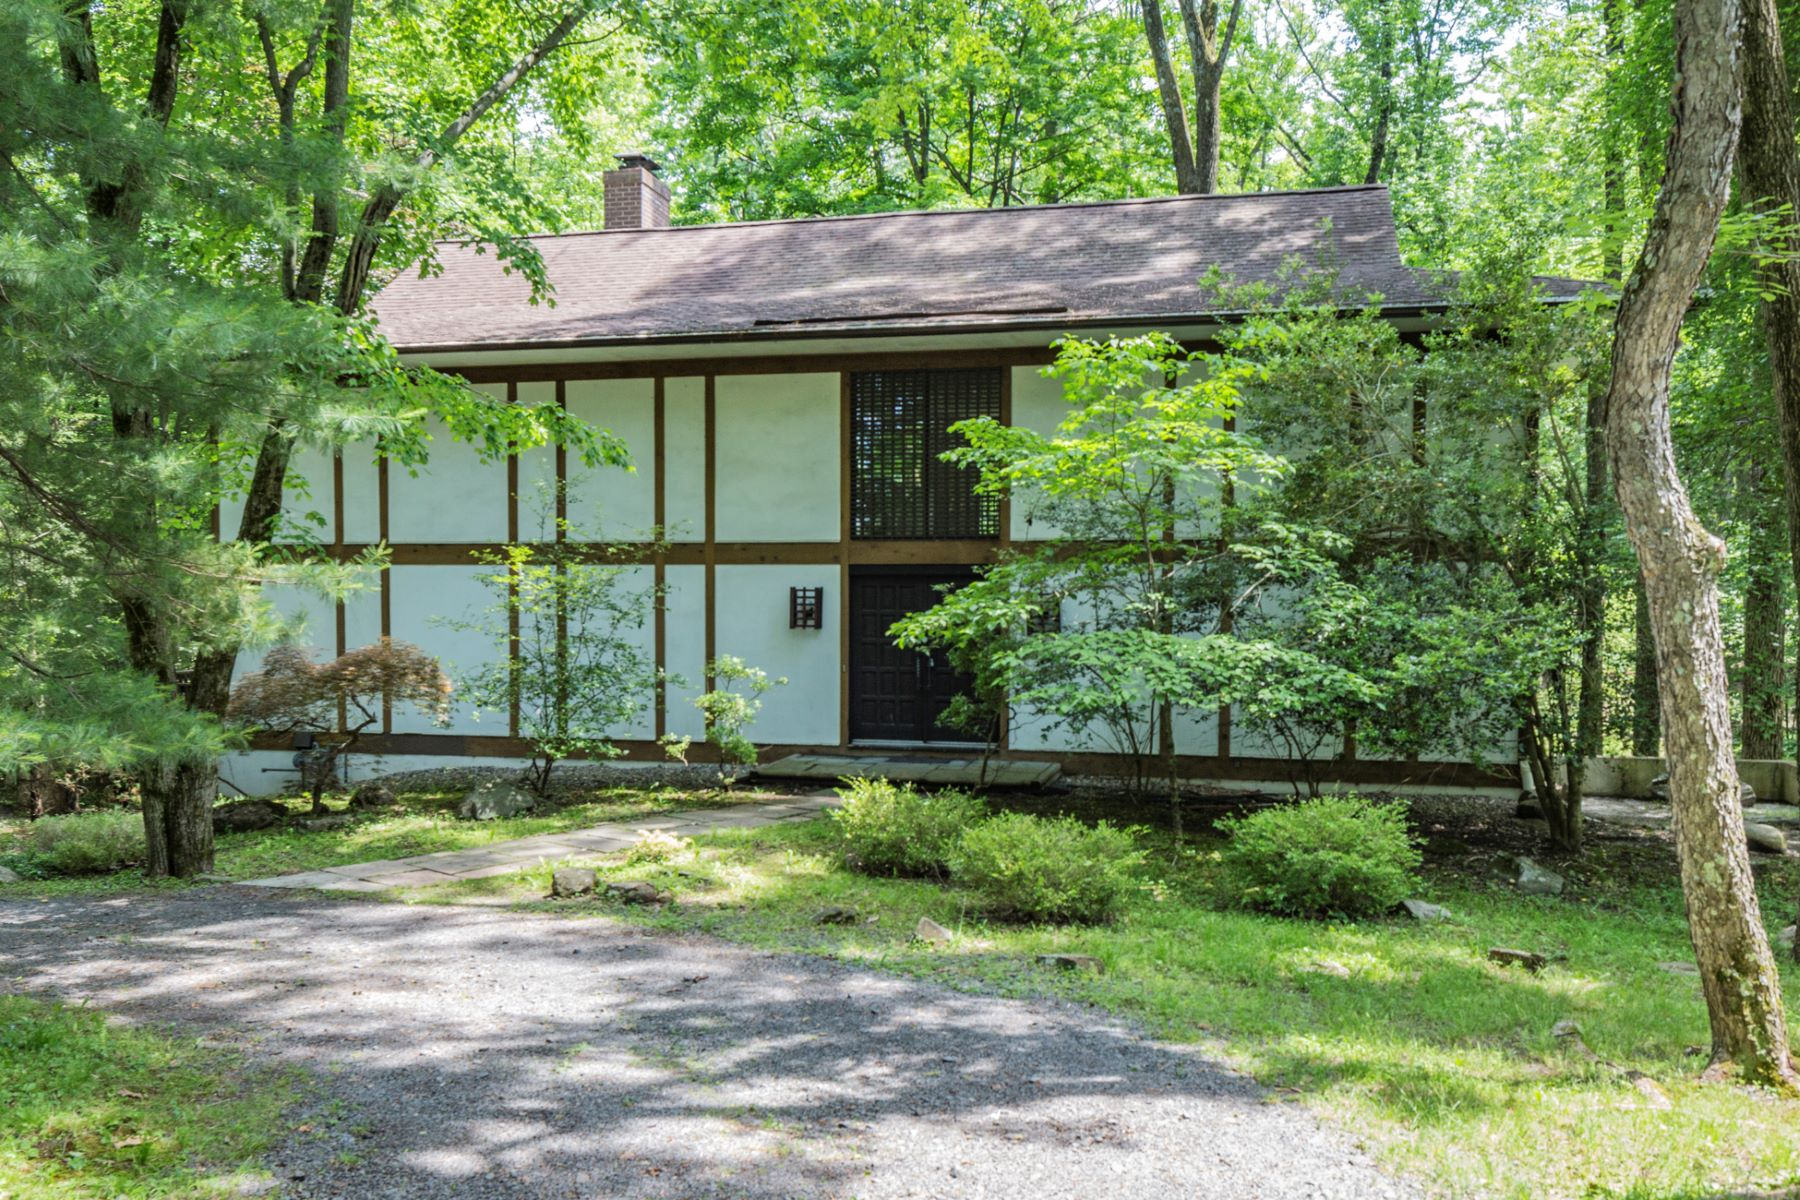 Property for Sale at Magnetic William Thompson Contemporary 163 Rolling Hill Road, Skillman, New Jersey 08858 United States